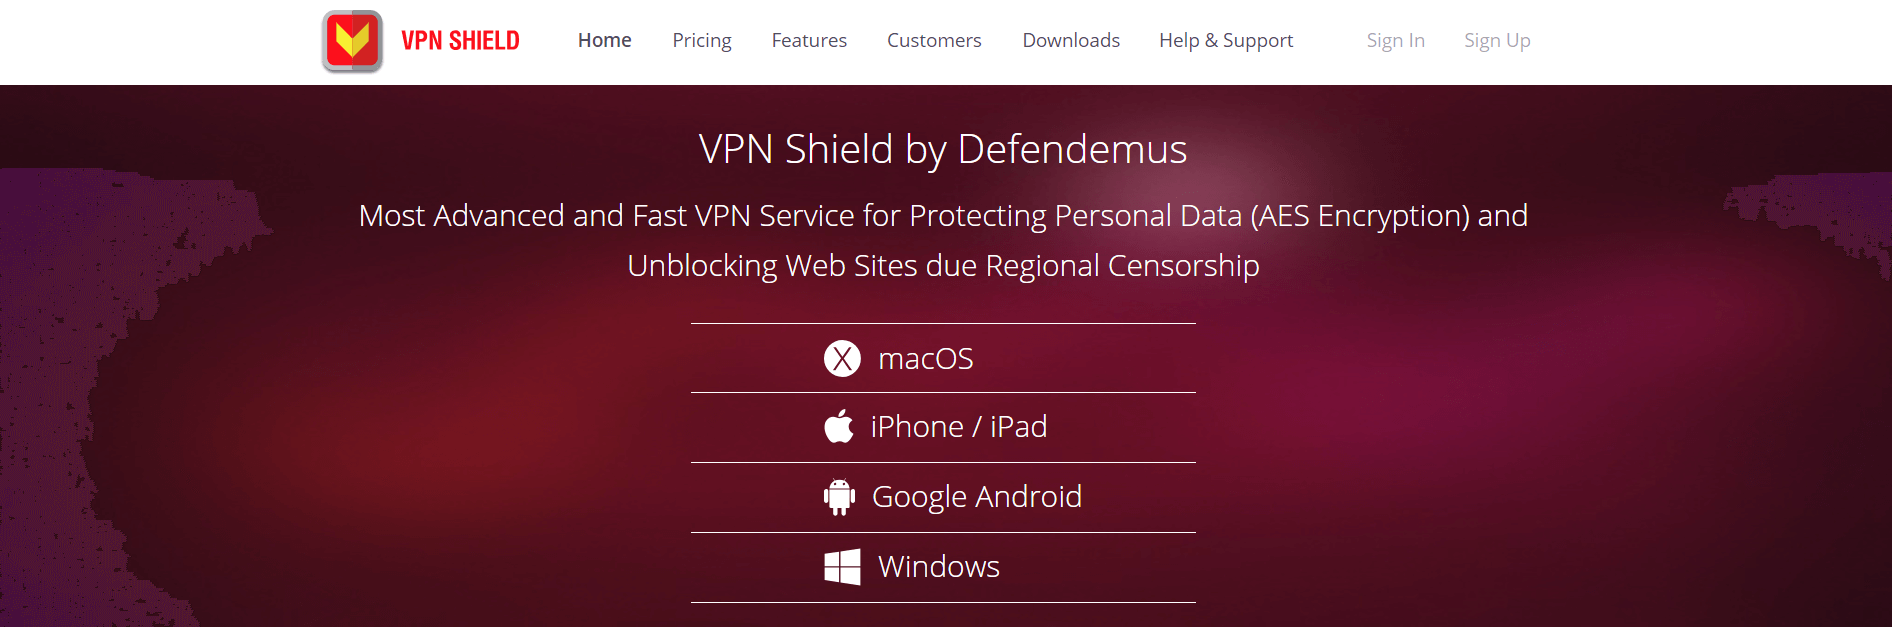 VPN Shield homepage